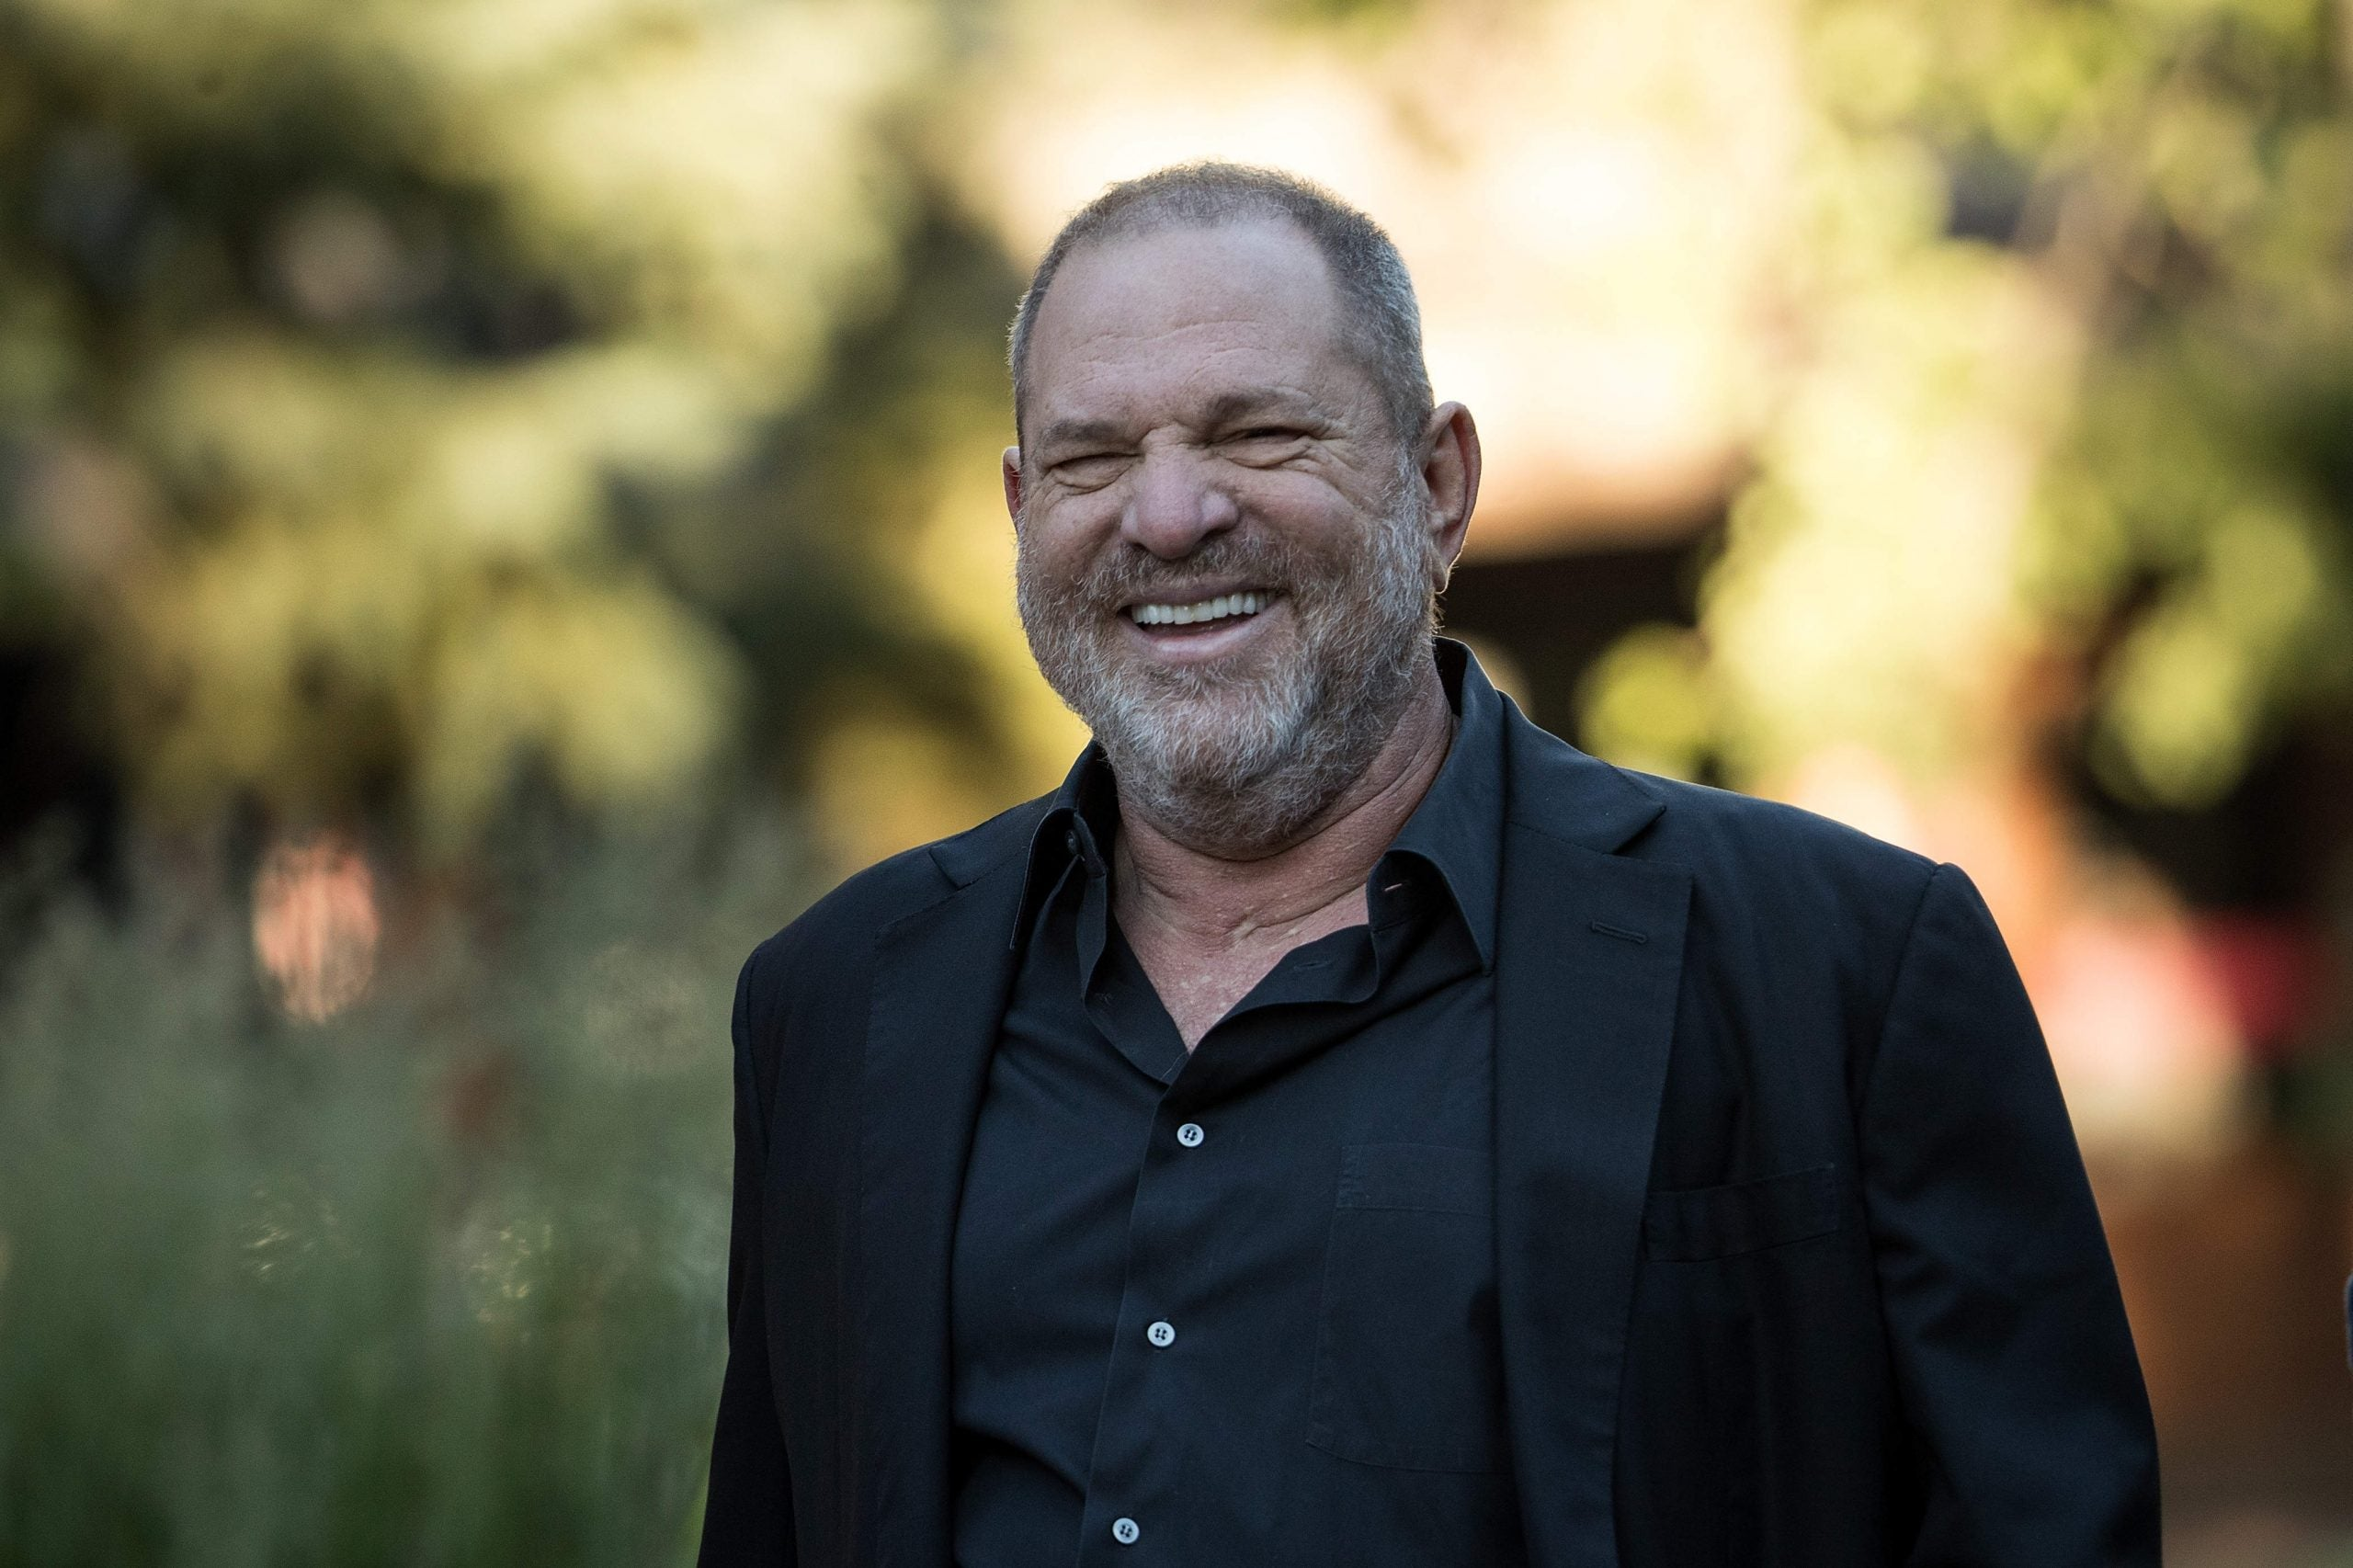 The Harvey Weinstein allegations are monstrous. But it's not just monsters who harass women